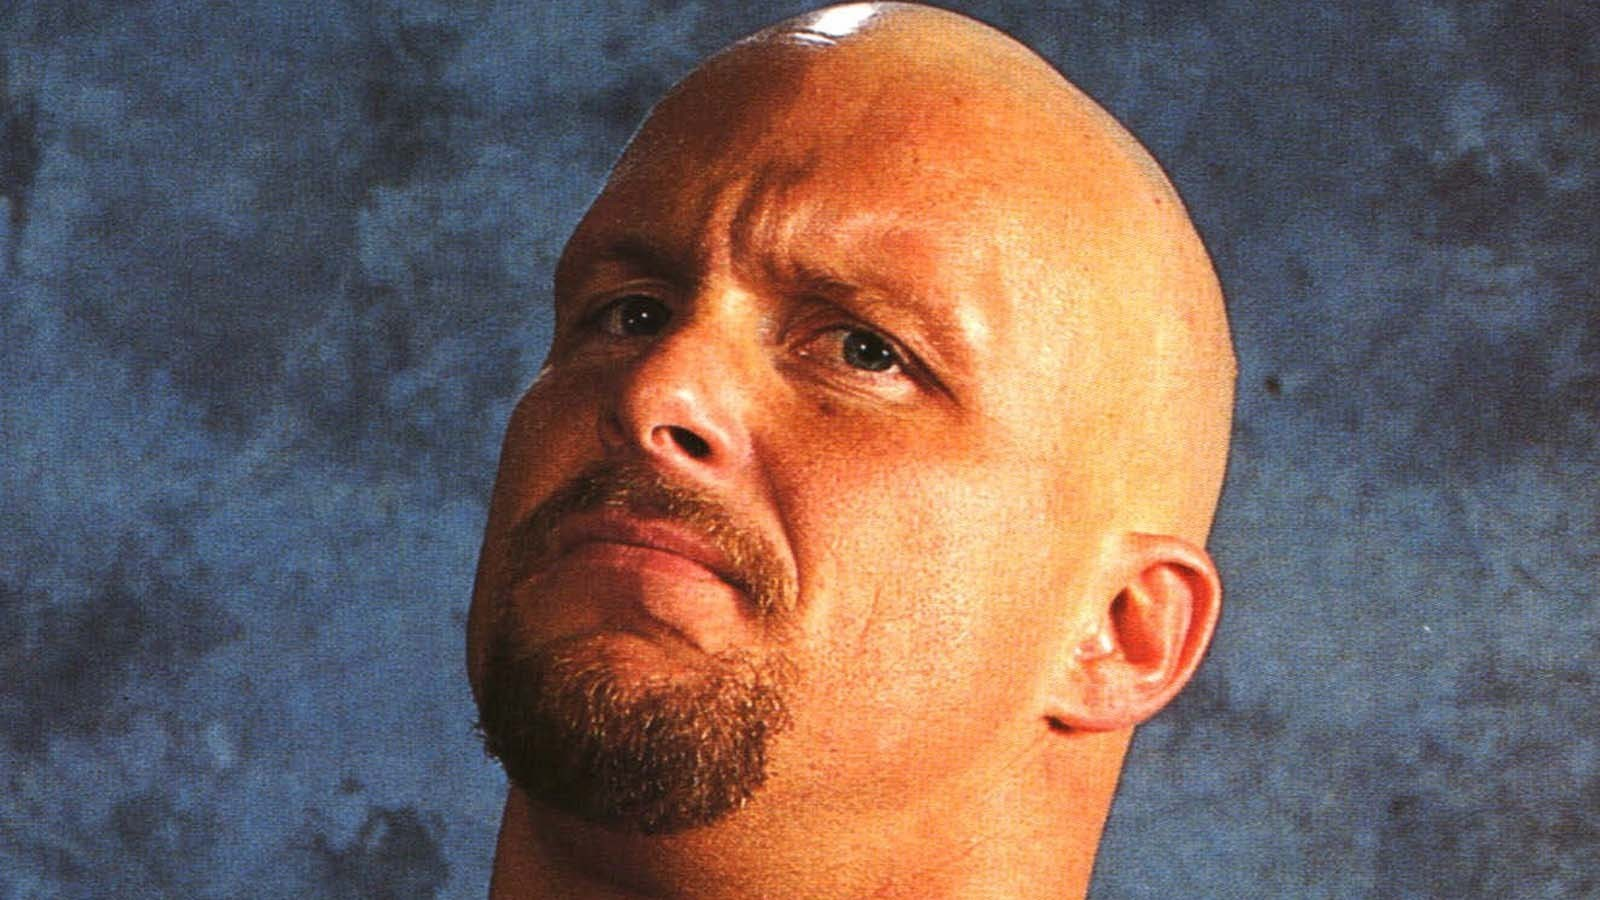 Stone Cold Steve Austin : Stone cold steve austin is making beer with a local